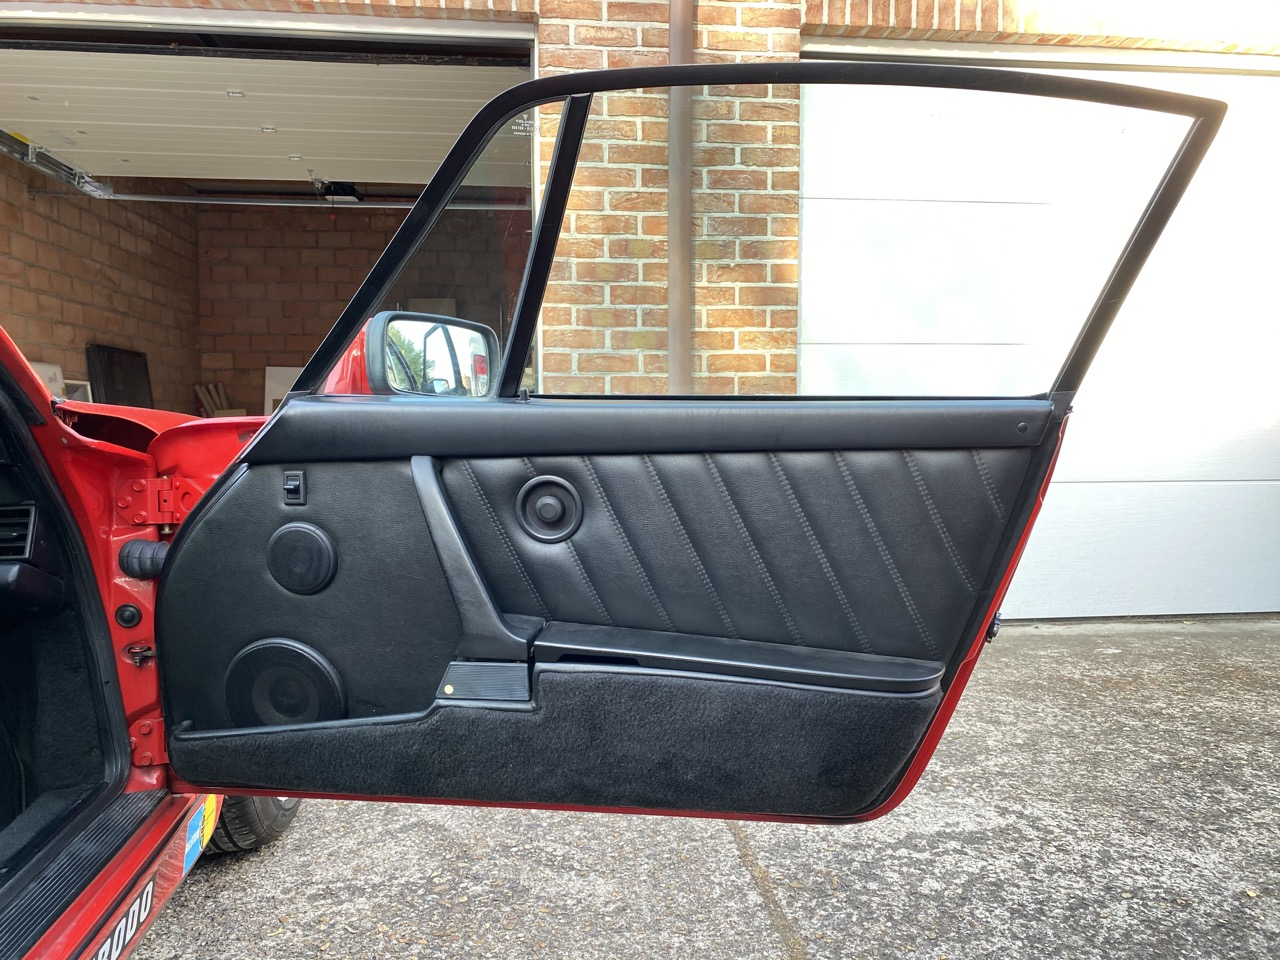 youngtimer.one - Porsche 964 Carrera 4 - Guards Red - 1989 - 13 of 20